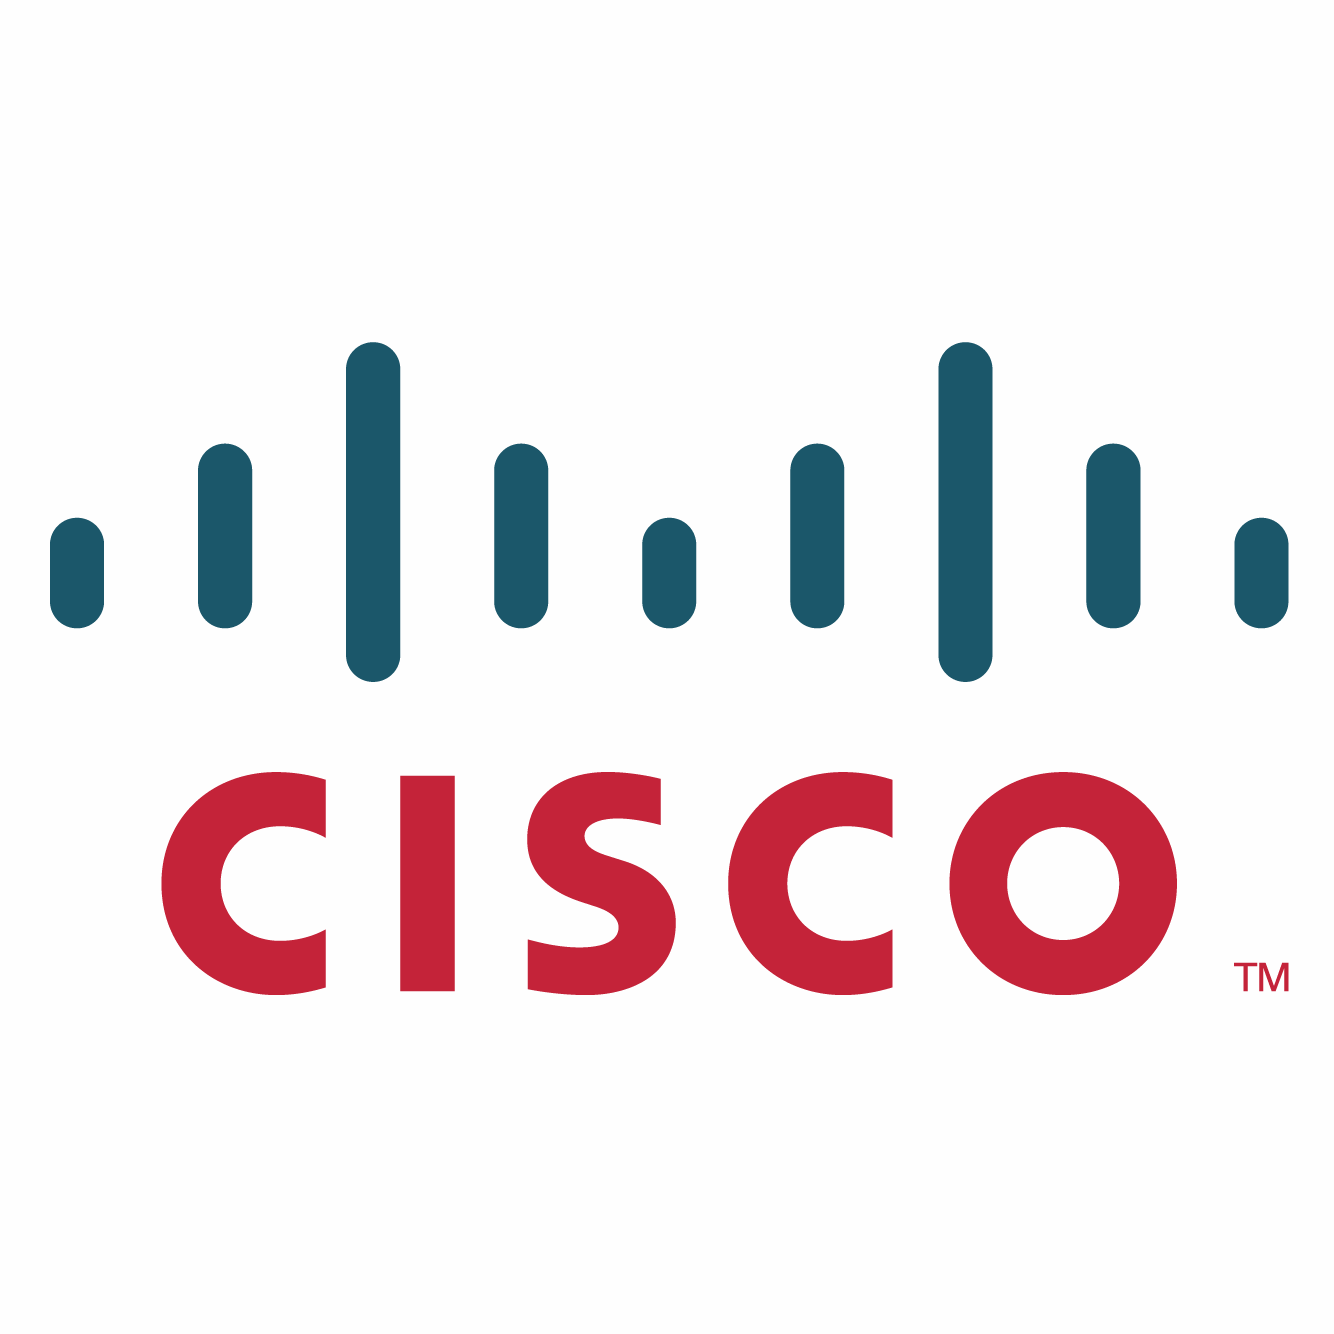 https://www.securetech.ae/wp-content/uploads/2019/02/04.CISCO_.png